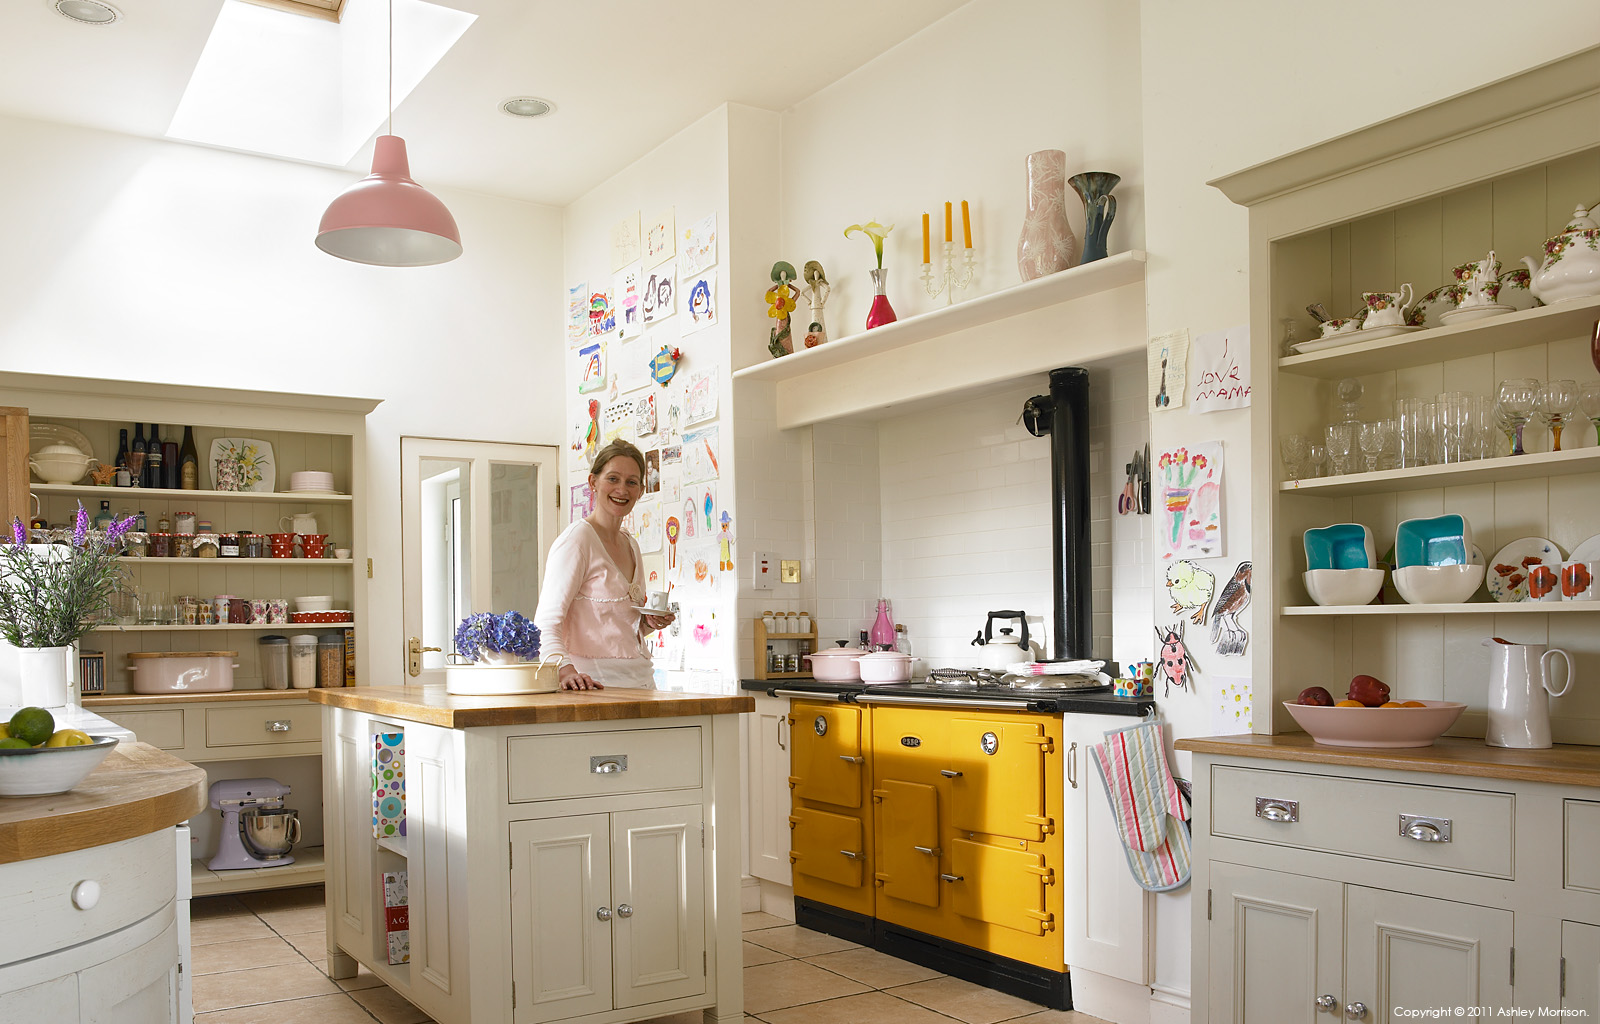 Brid ni Fhlathuin in the kitchen of her Irish cottage overlooking the Aran Islands in Connemara by Ashley Morrison.